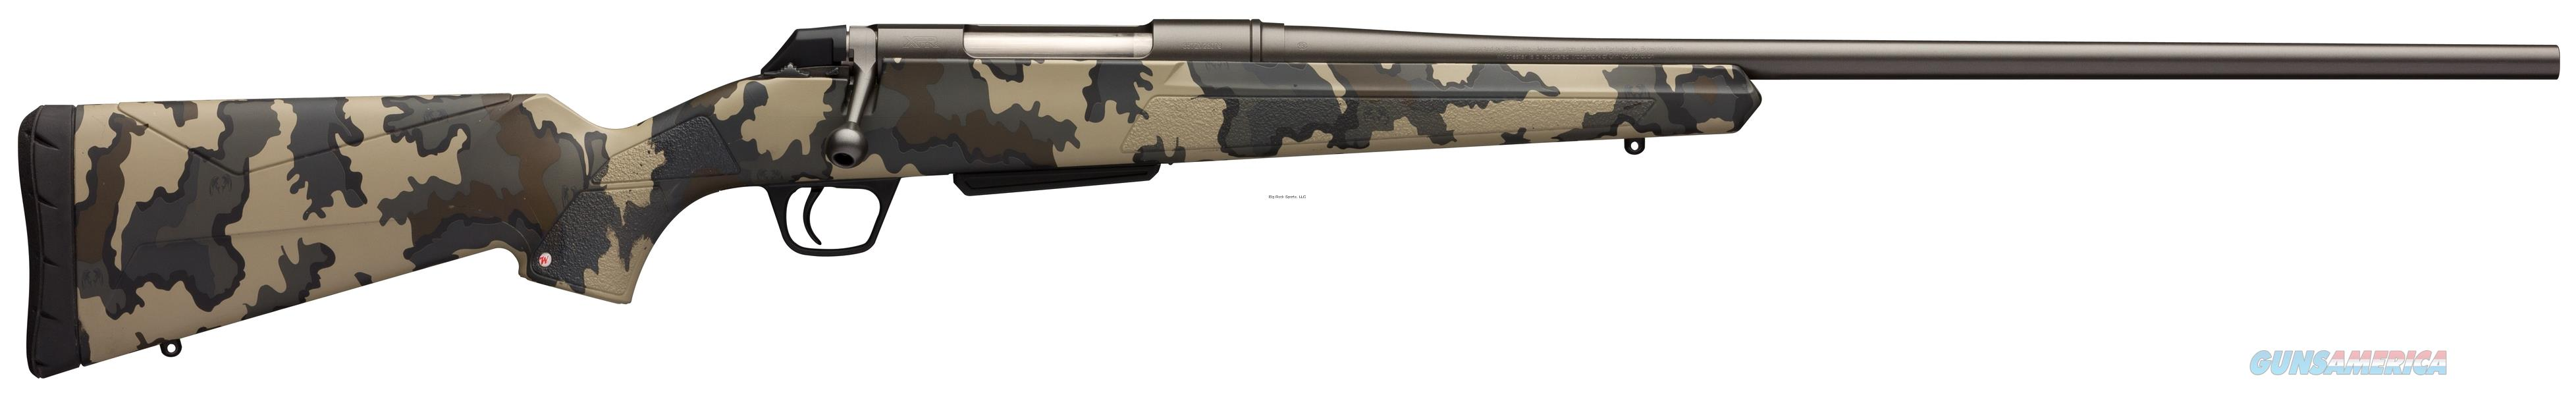 "Winchester Xpr Hunter Vias Bolt Action Rifle, 308 Win, 22"" Bbl, Permacote Gray Barrel, Vias Camo Stock 535713220  Guns > Rifles > W Misc Rifles"